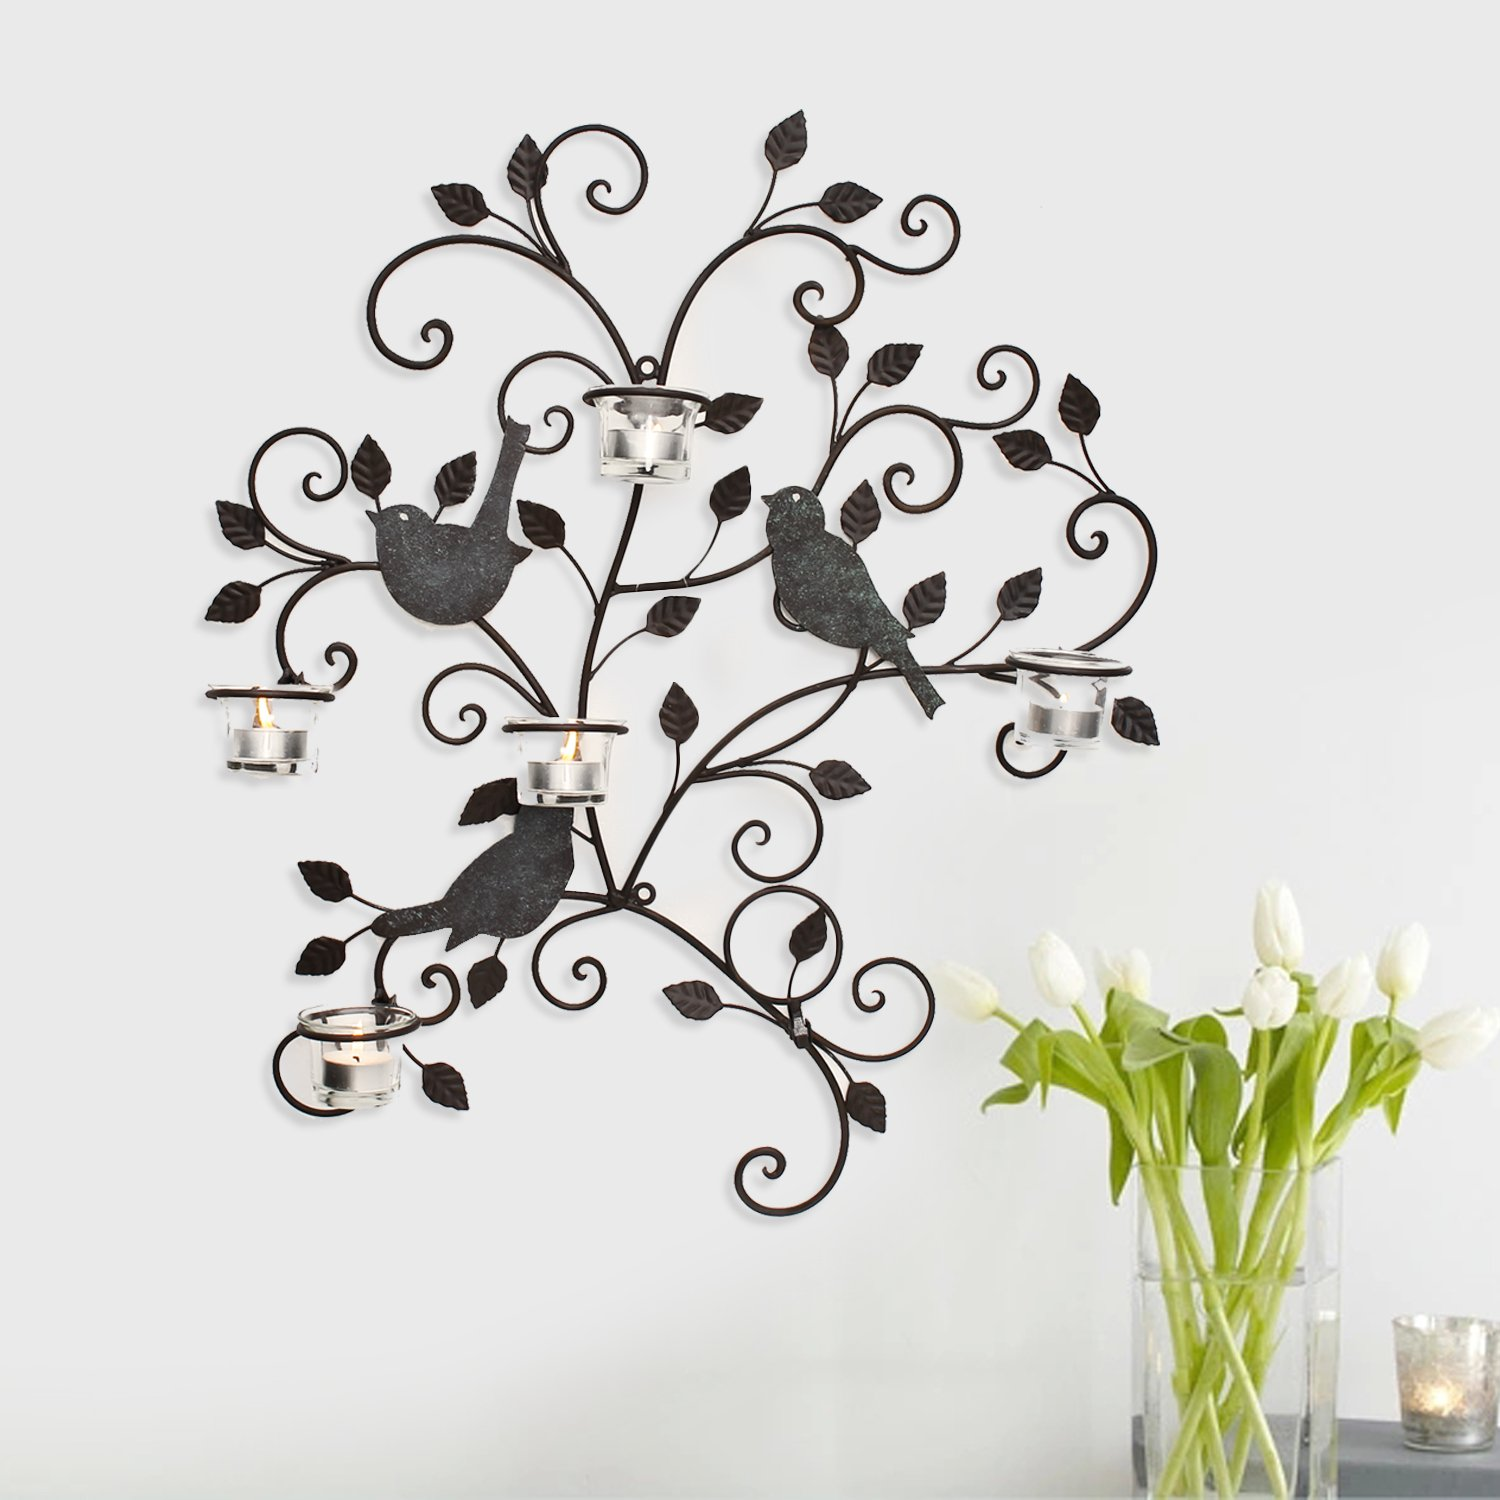 Amazon.com Adeco HD0024 Decorative Iron Wall Hanging Tea Light Candle Holder Birds u0026 Branches Black Home u0026 Kitchen  sc 1 st  Amazon.com & Amazon.com: Adeco HD0024 Decorative Iron Wall Hanging Tea Light ... azcodes.com